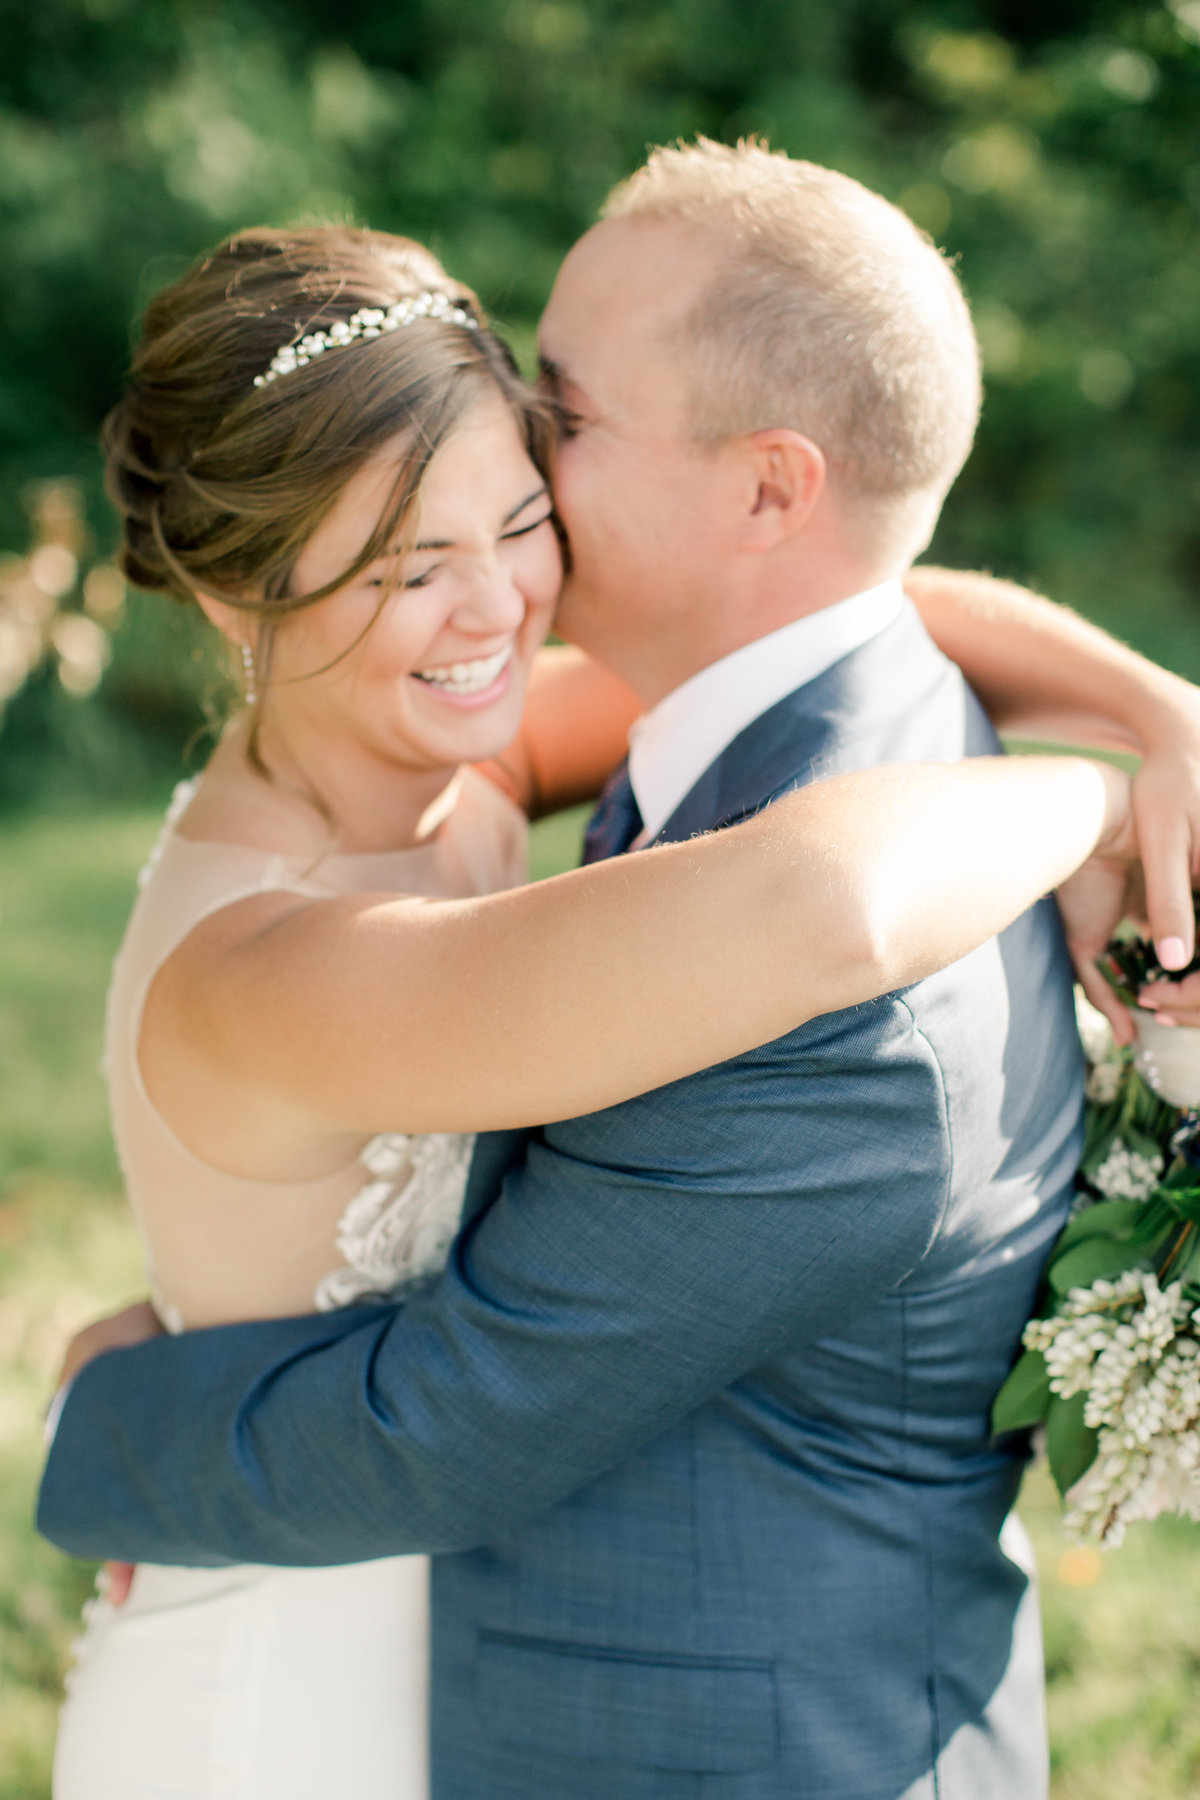 groom kisses brides cheek in wedding portraits outside